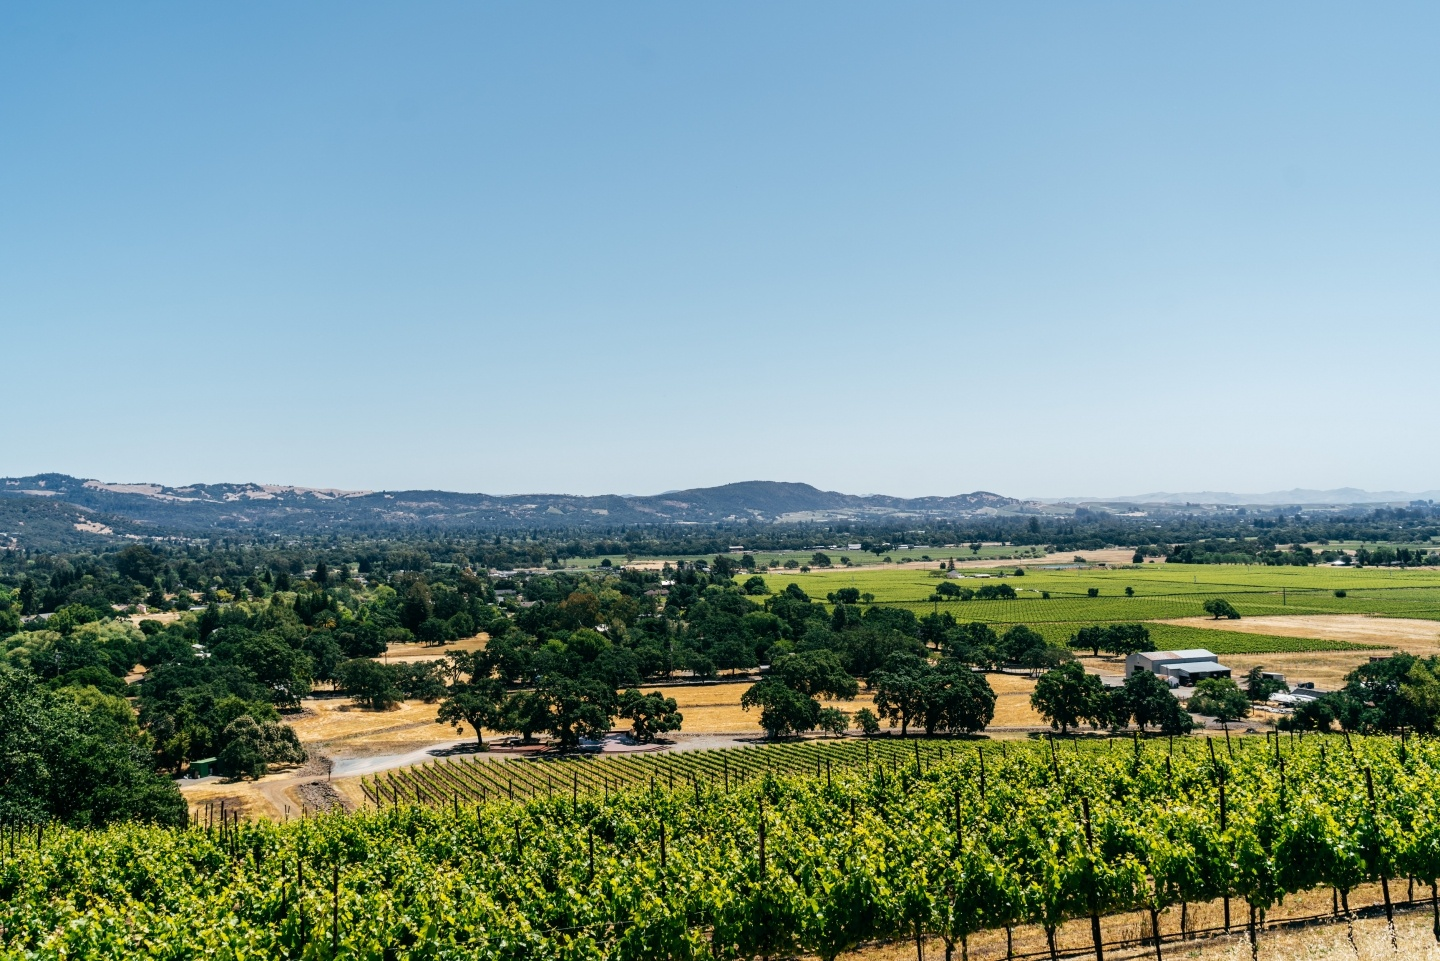 View from Durell Vineyard in Sonoma